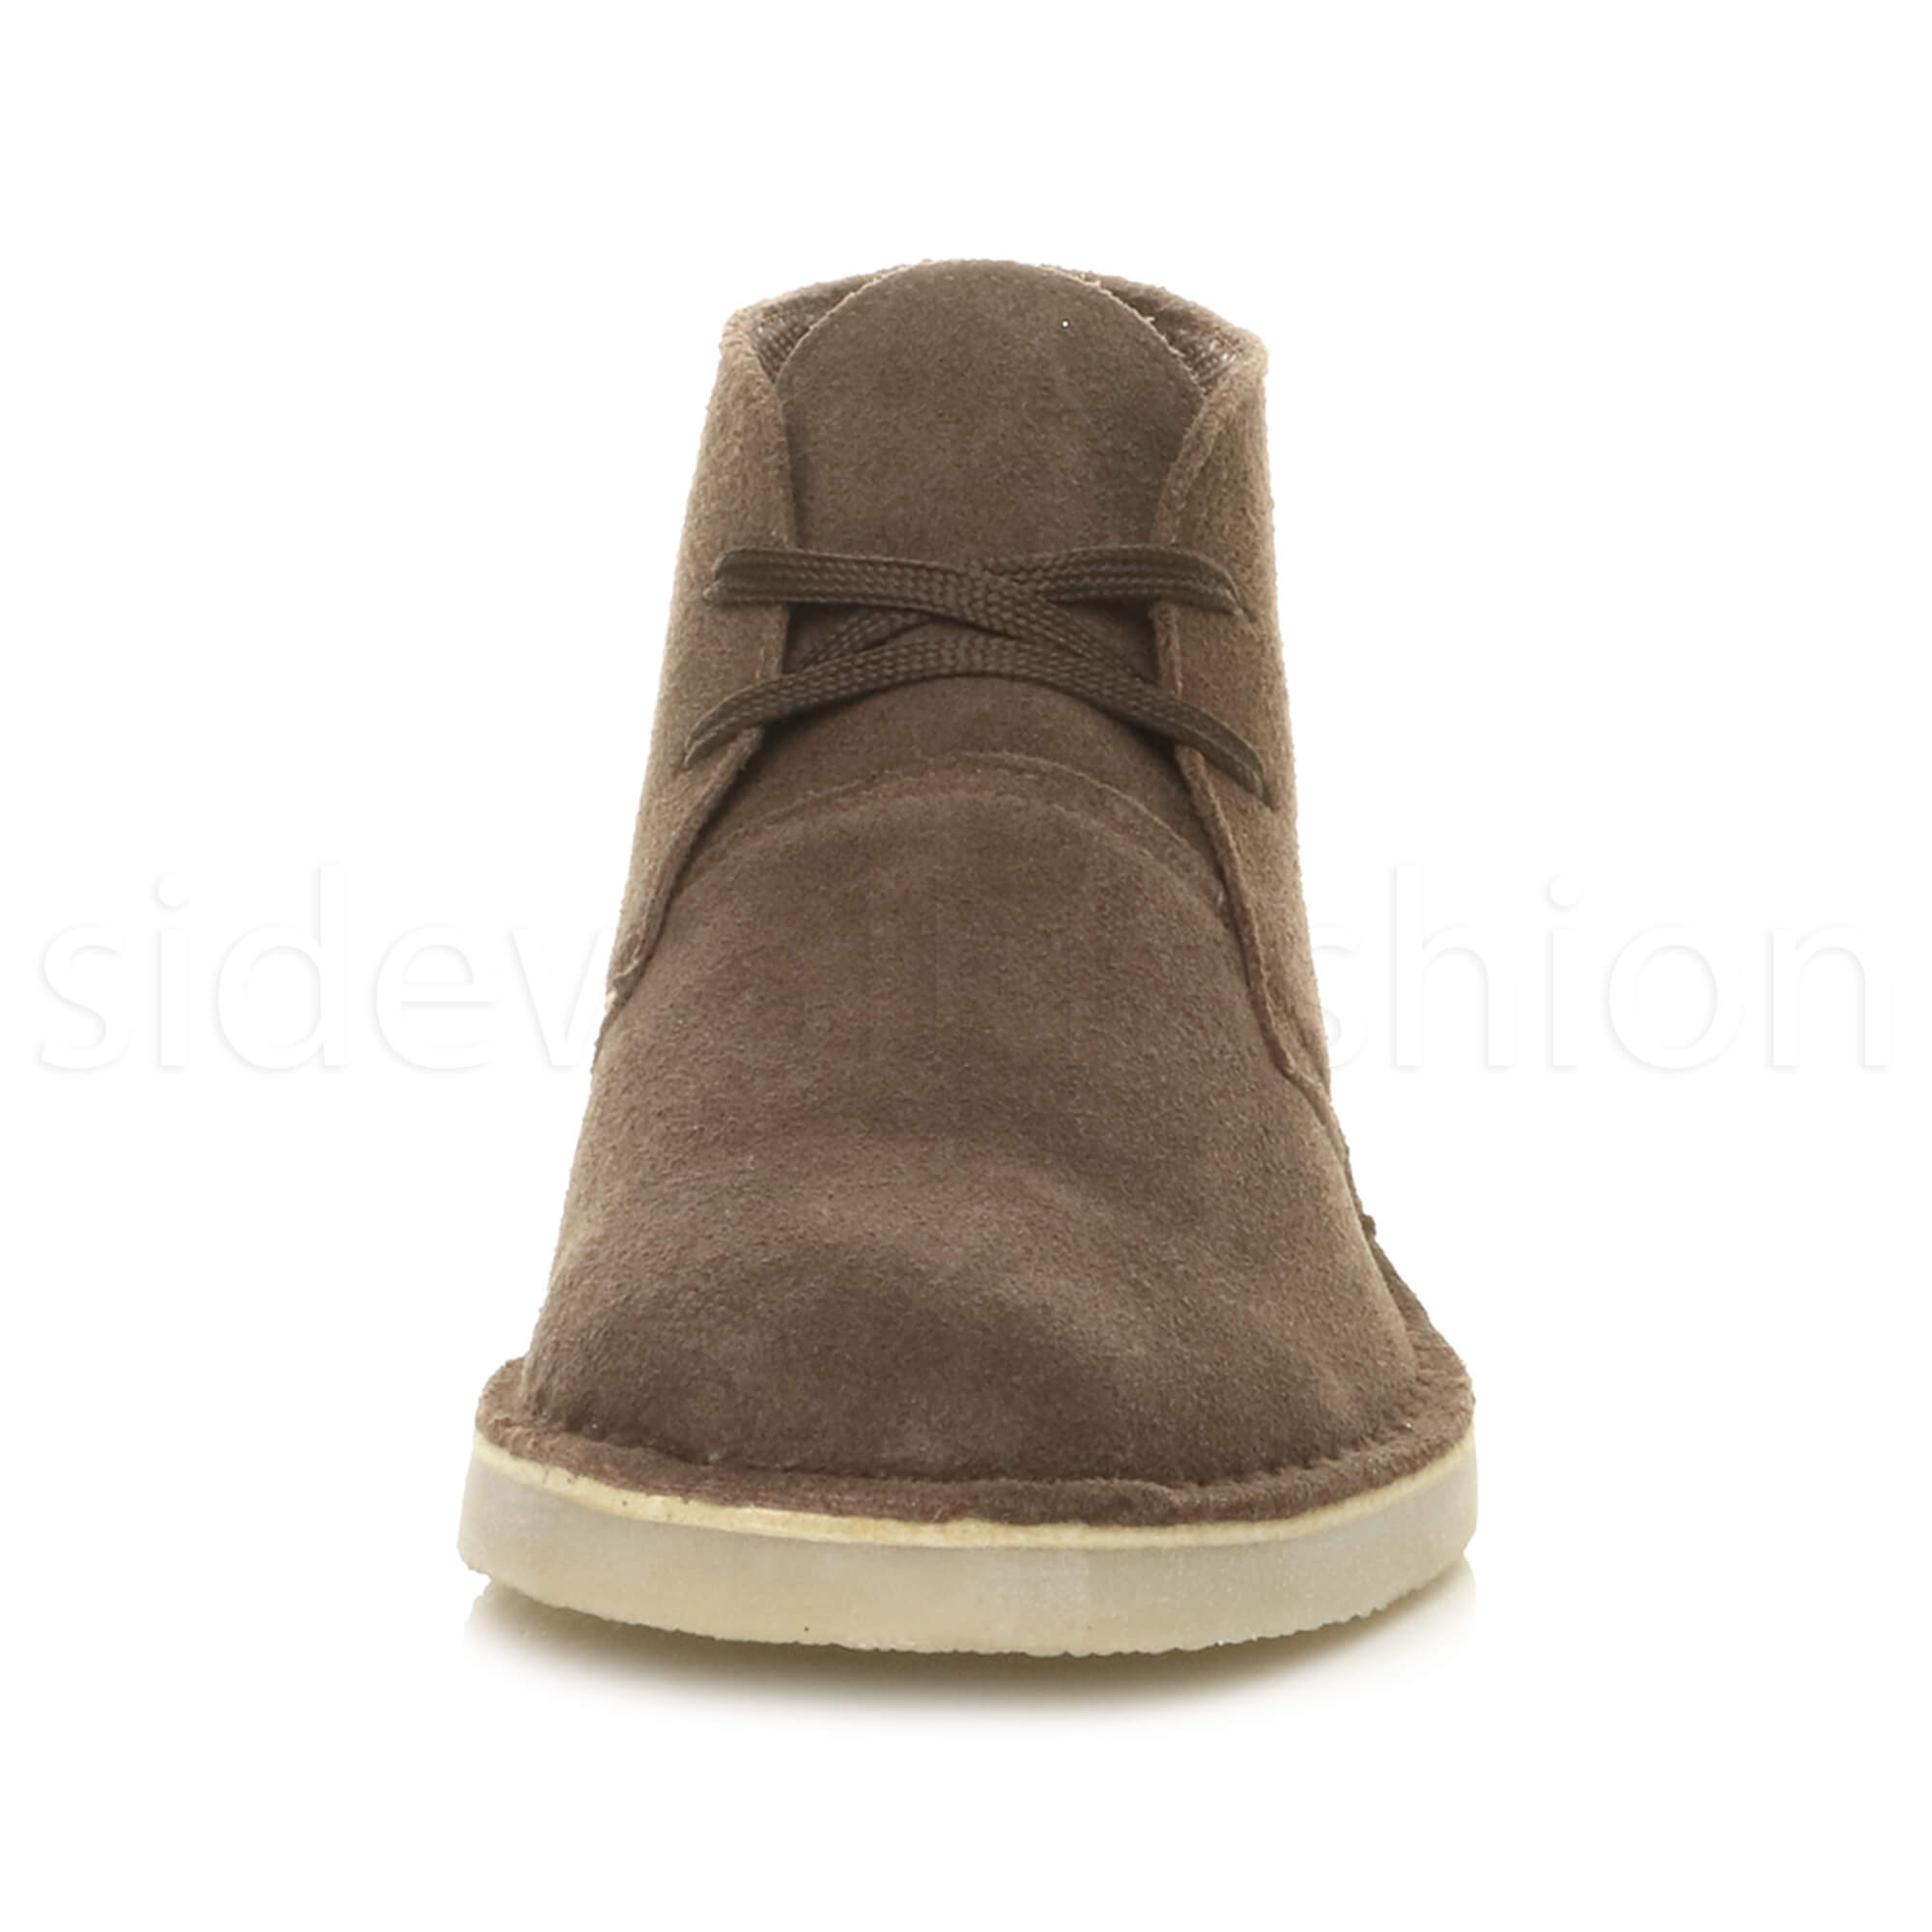 Mens-lace-up-rubber-sole-suede-ankle-chukka-desert-boots-classic-shoes-size thumbnail 13